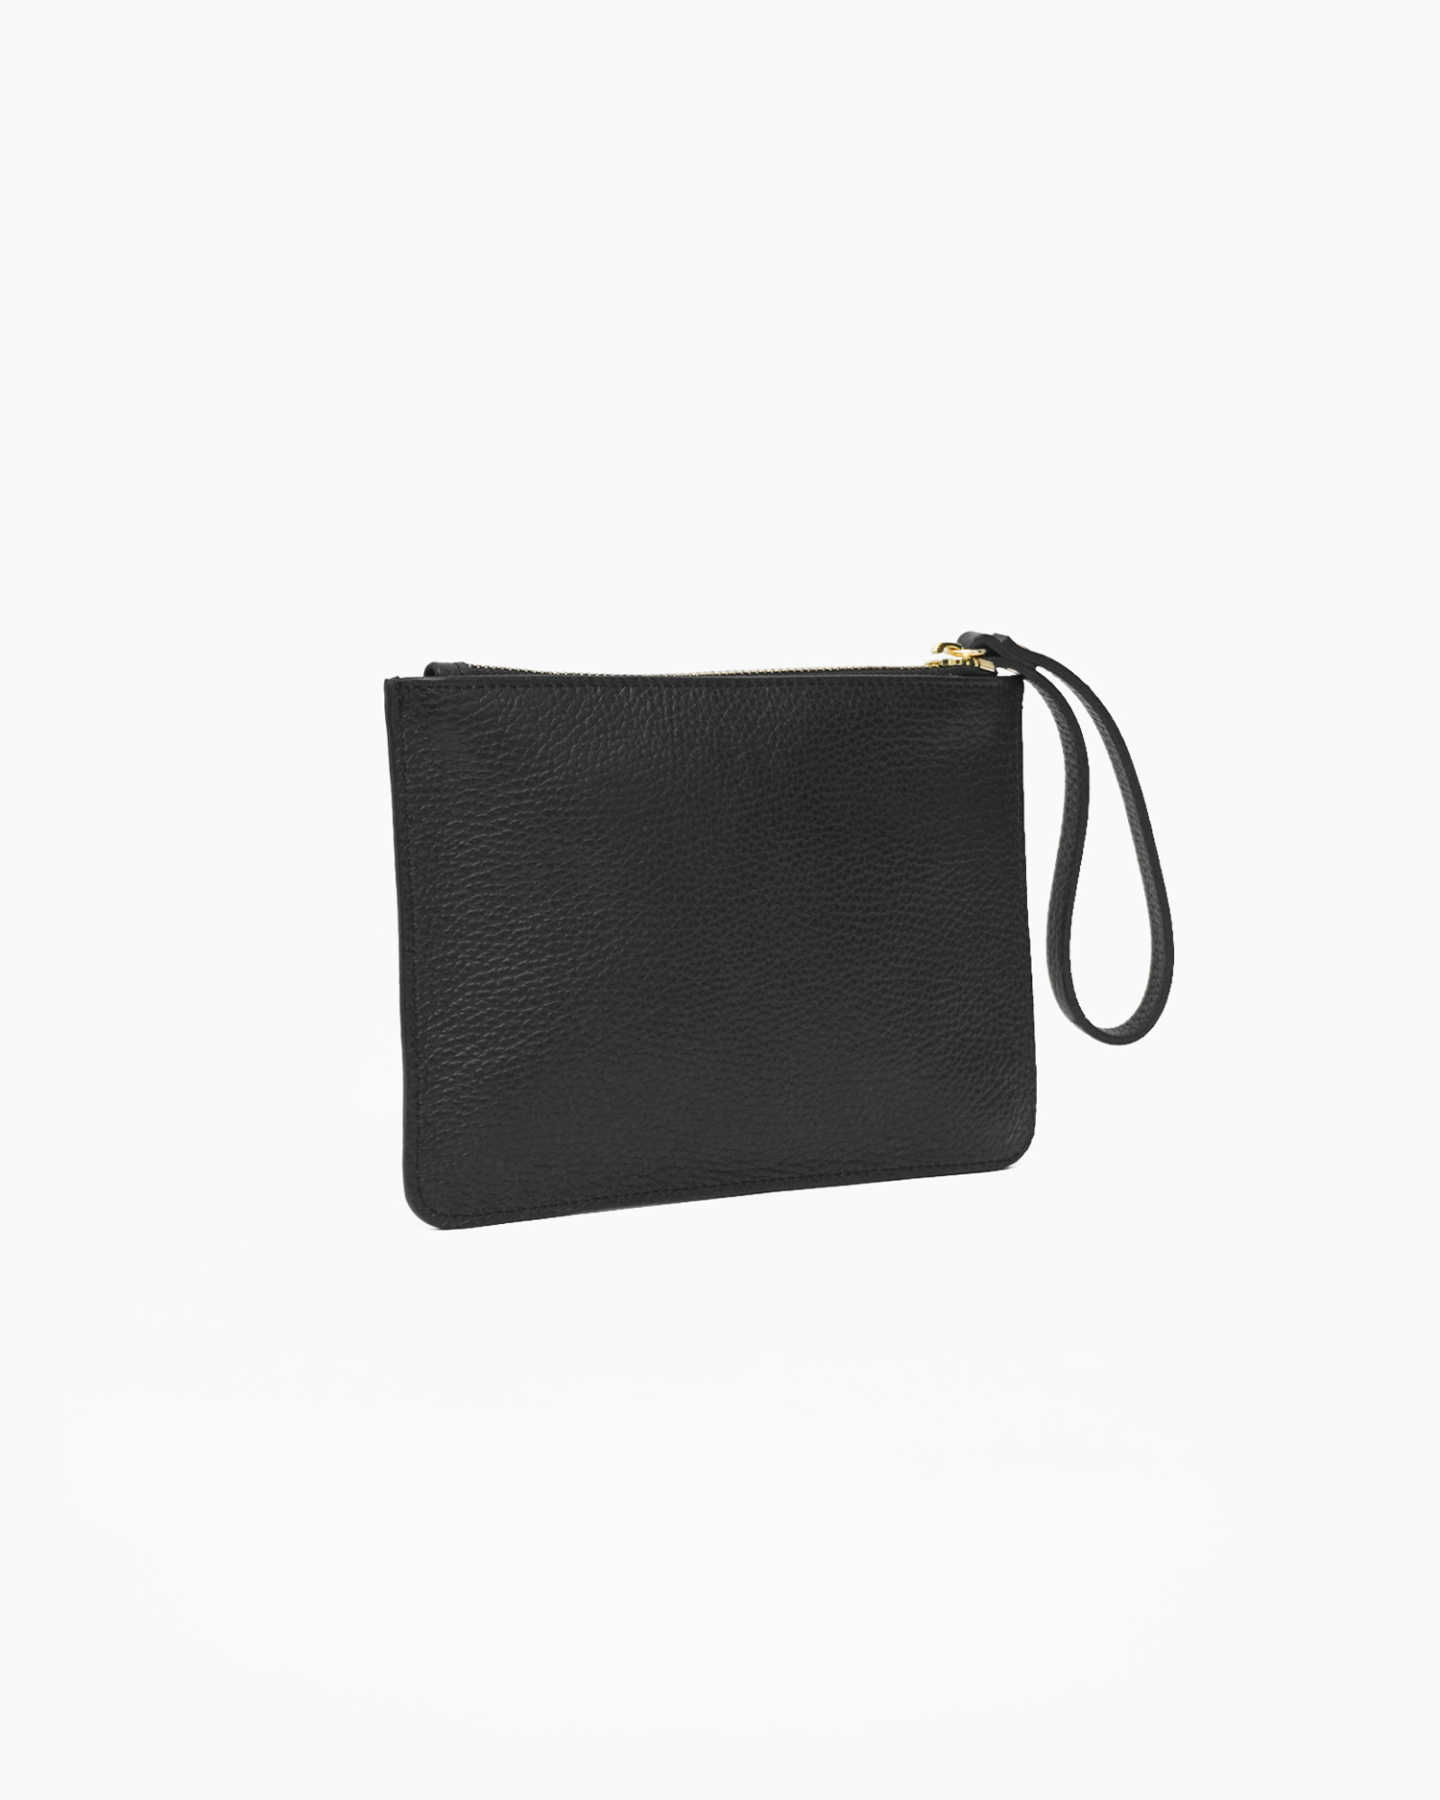 Italian Pebbled Leather Wristlet - Black - 1